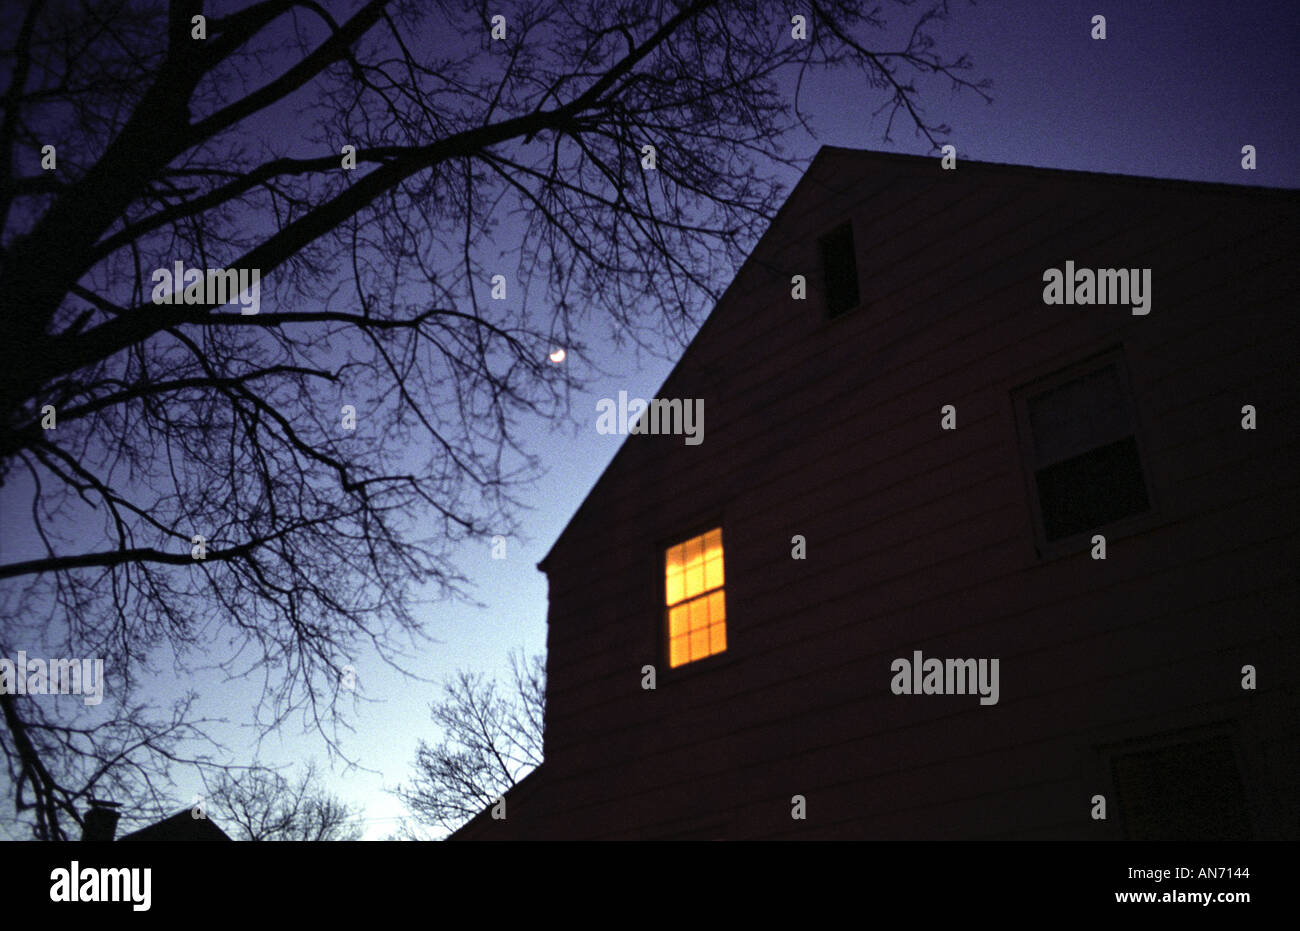 'working late' A house at dusk with a single room lit. insomnia, insomniac. Night. 'night fall' - Stock Image